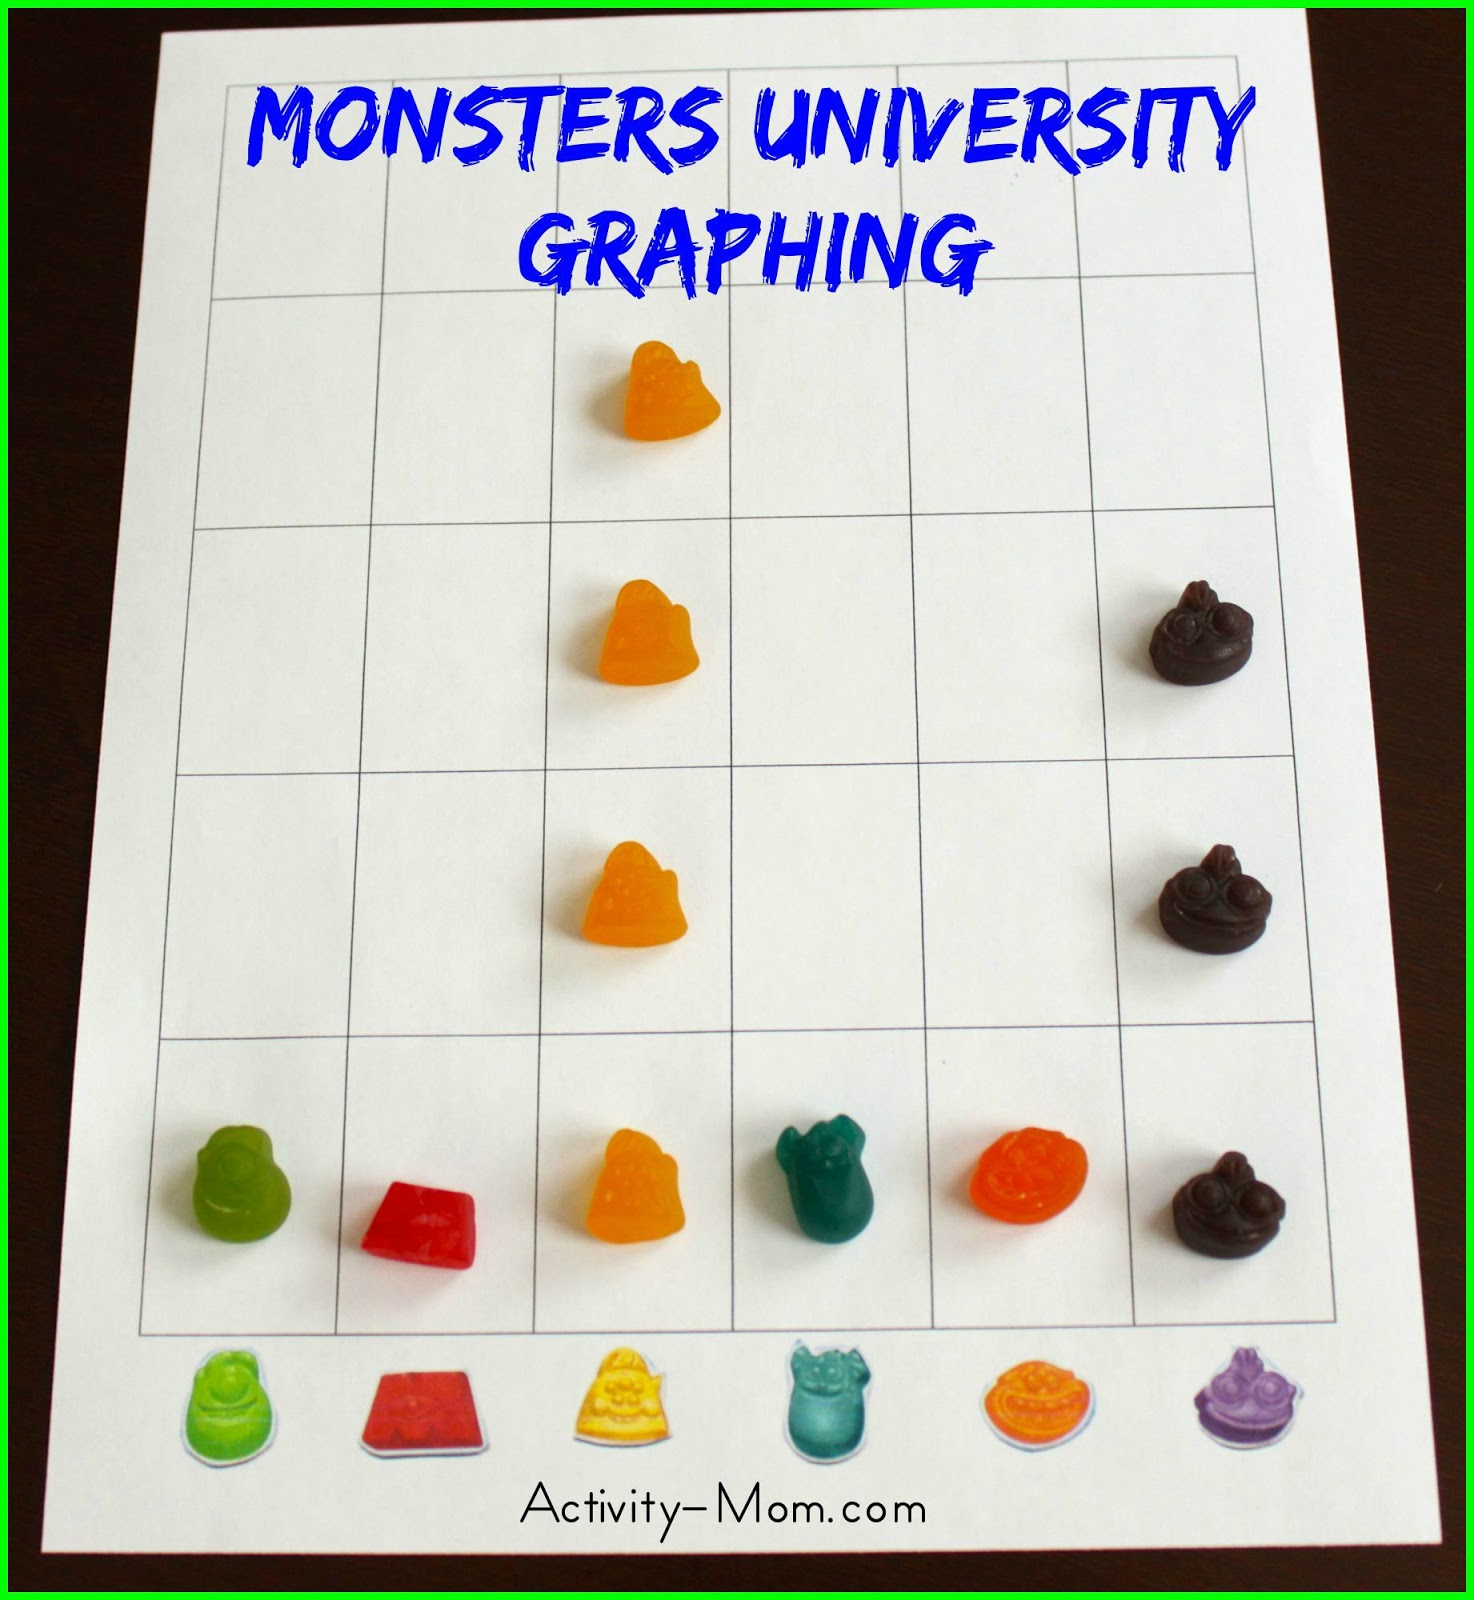 the activity mom monsters university graphing printable the